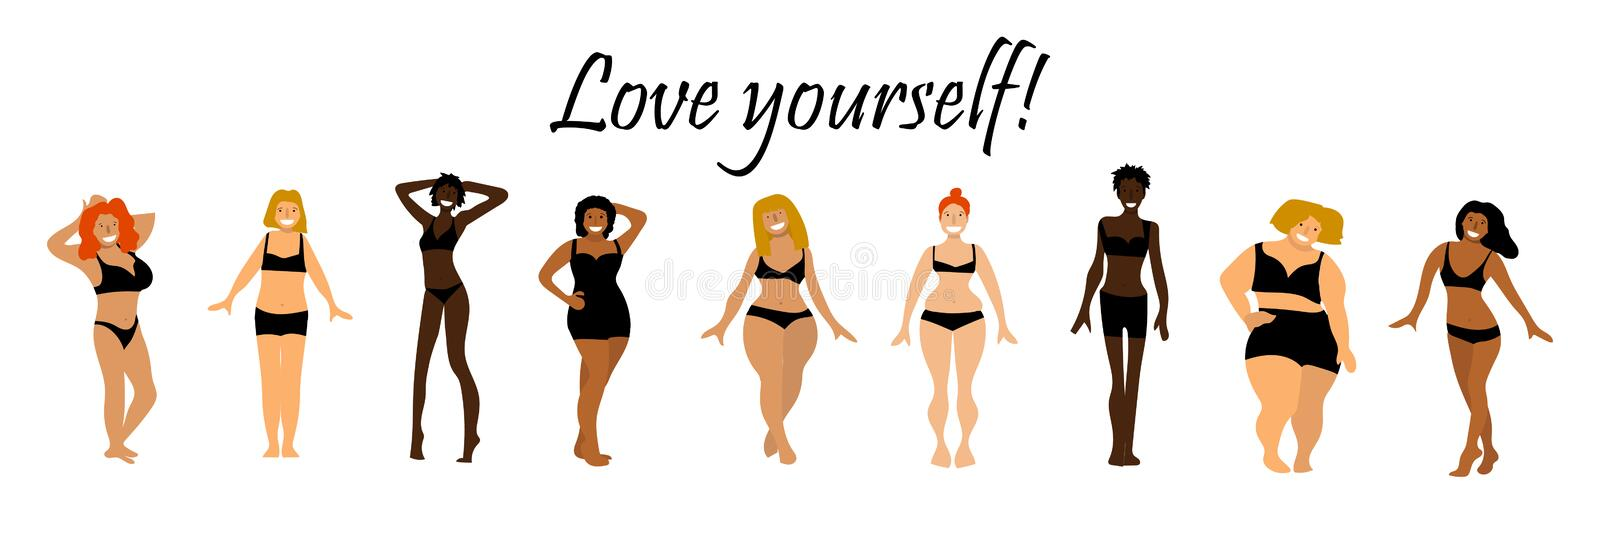 Body positive set. Love yourself text. Multiracial women of different height, figure type and size vector illustration